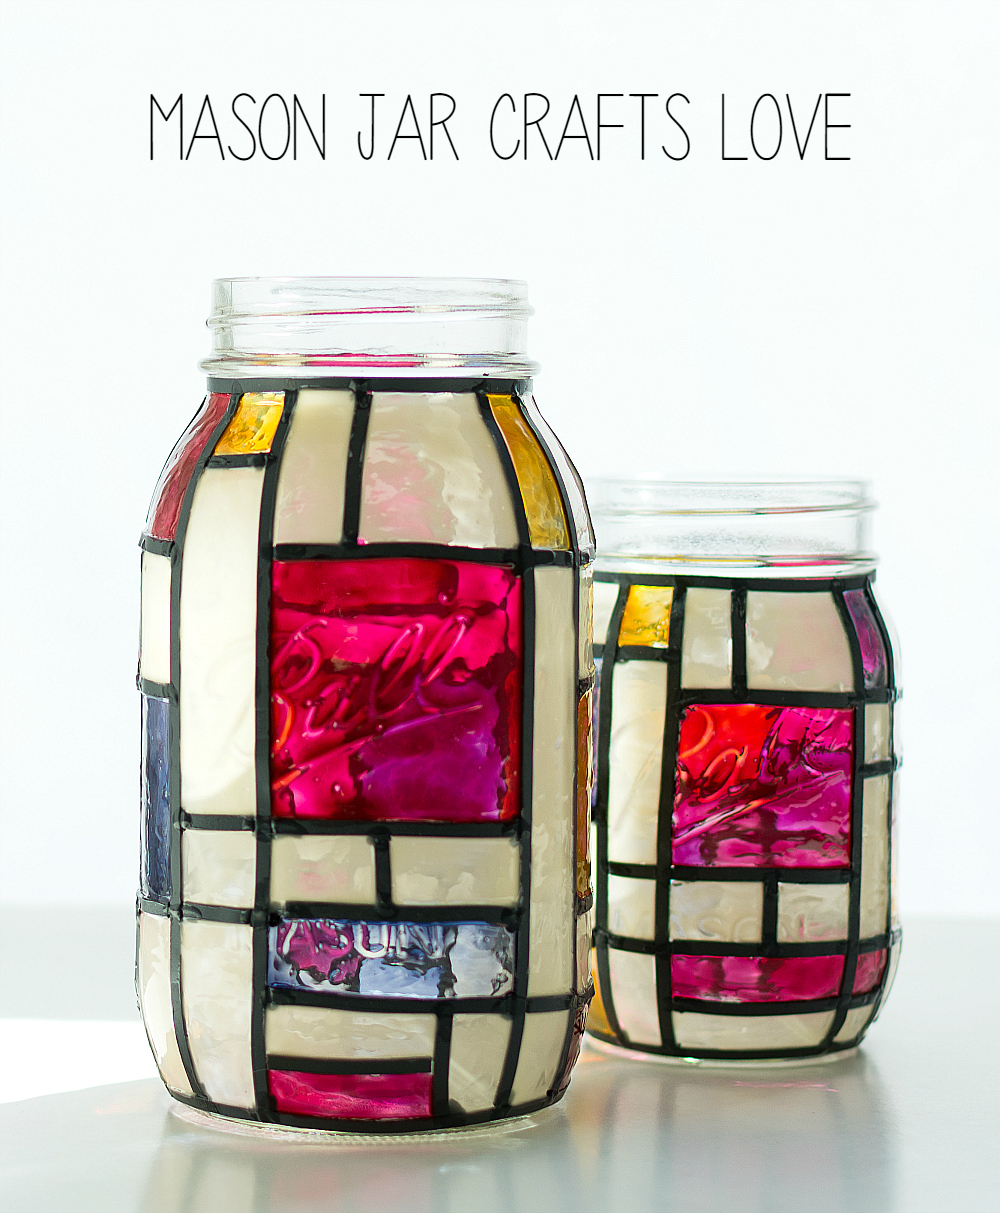 Mondrian Mason Jars - Mason Jar Crafts Love